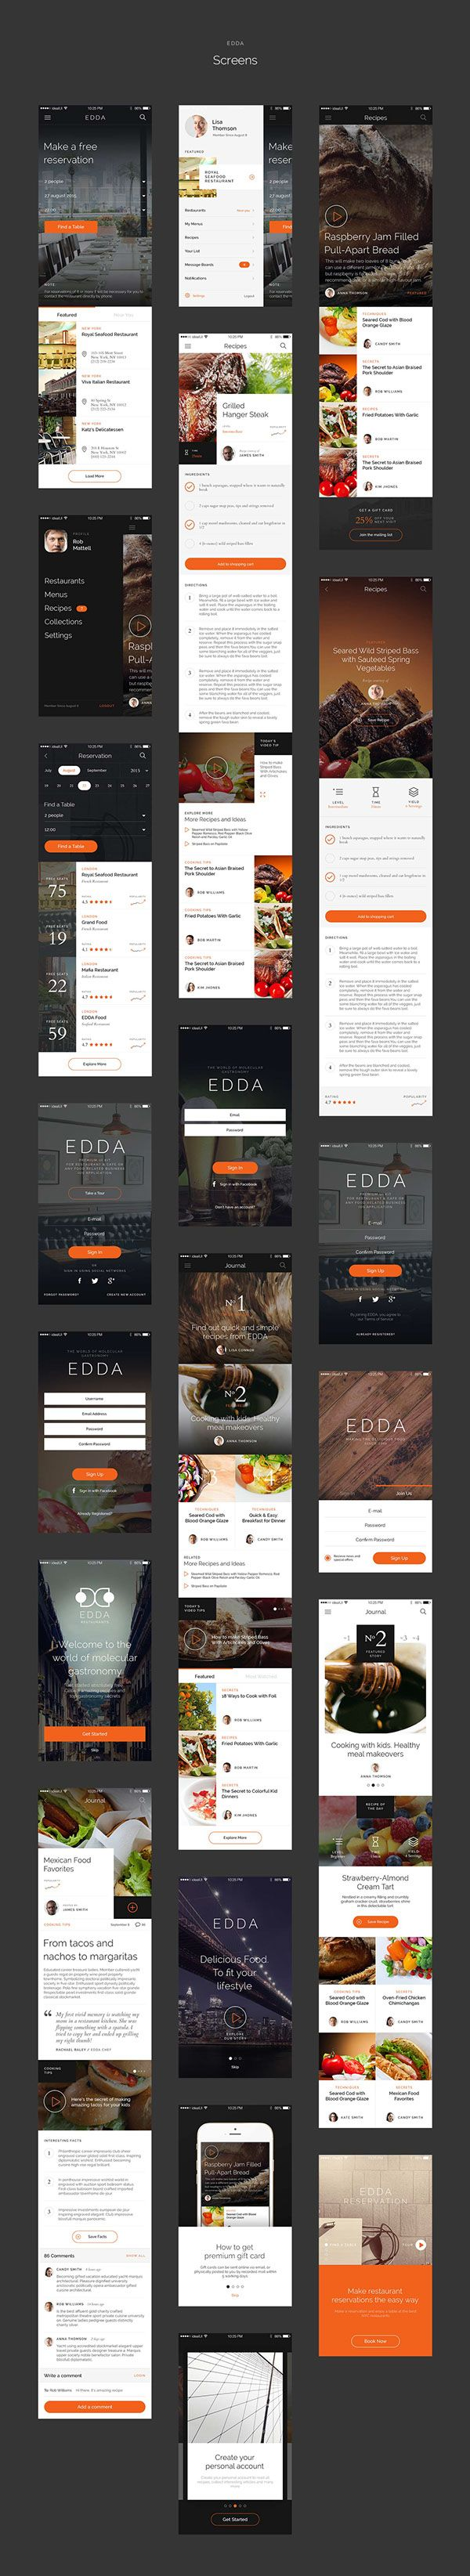 EDDA — is Premium UI kit for Restaurant & Cafe or any food related business iOS application. With current kit you can easily create an attractive iPhone or Android applications.